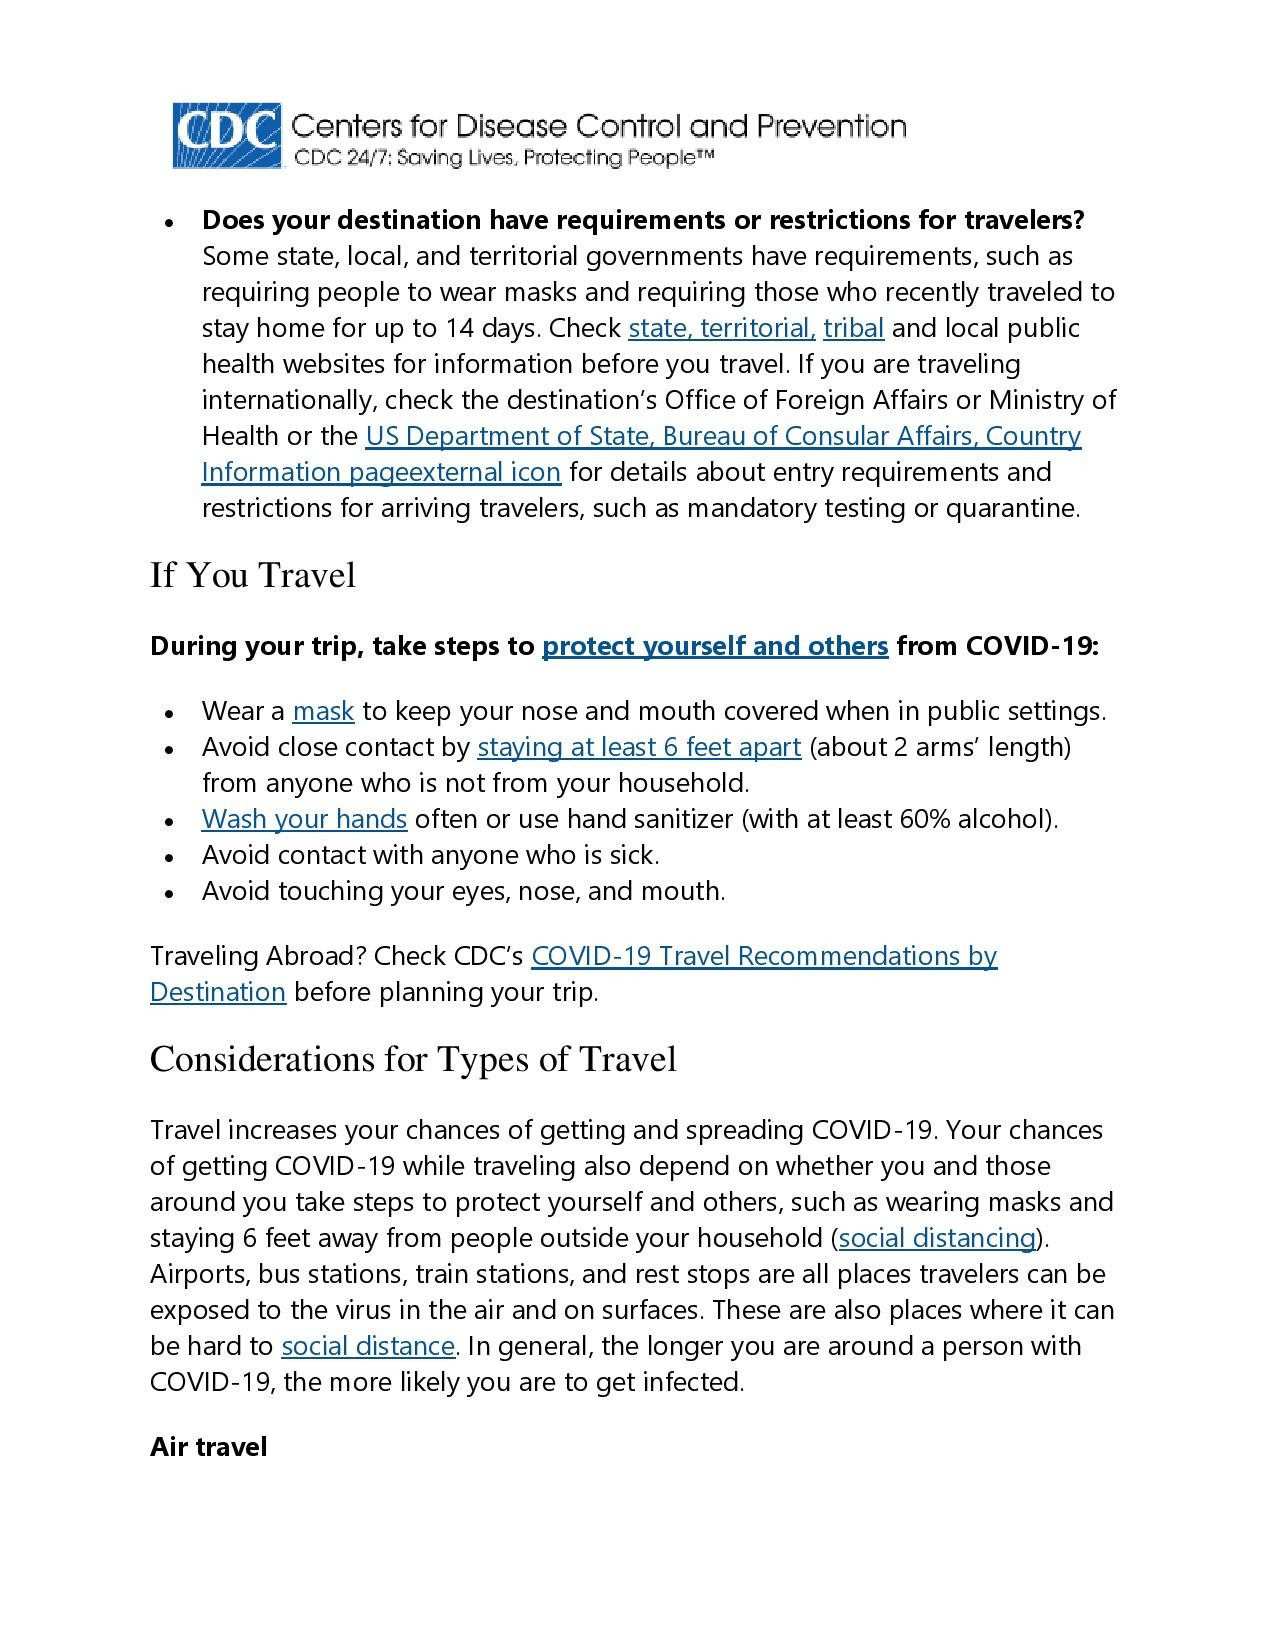 Travel during the COVID.docx-page-002